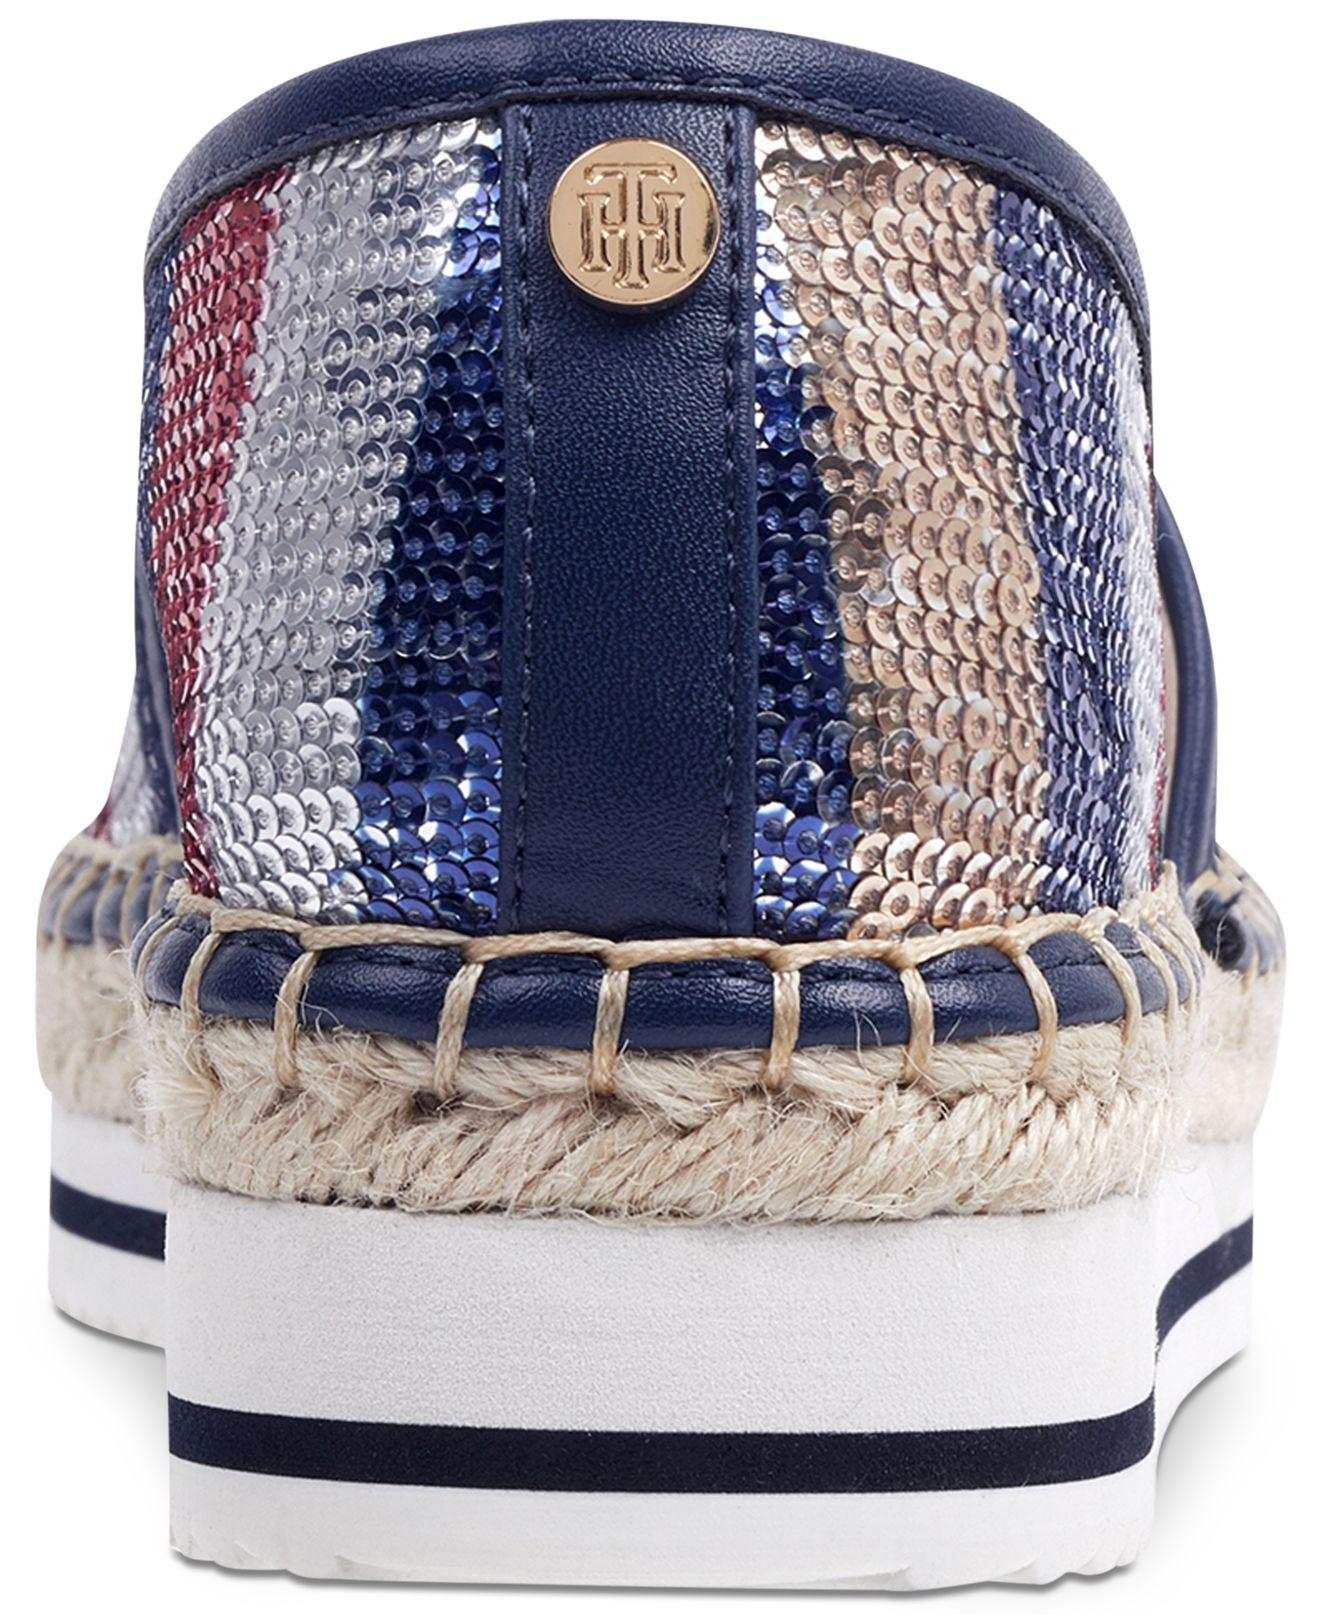 2e5170fe02abfc Lyst - Tommy Hilfiger Carliss Espadrille Flats in Blue